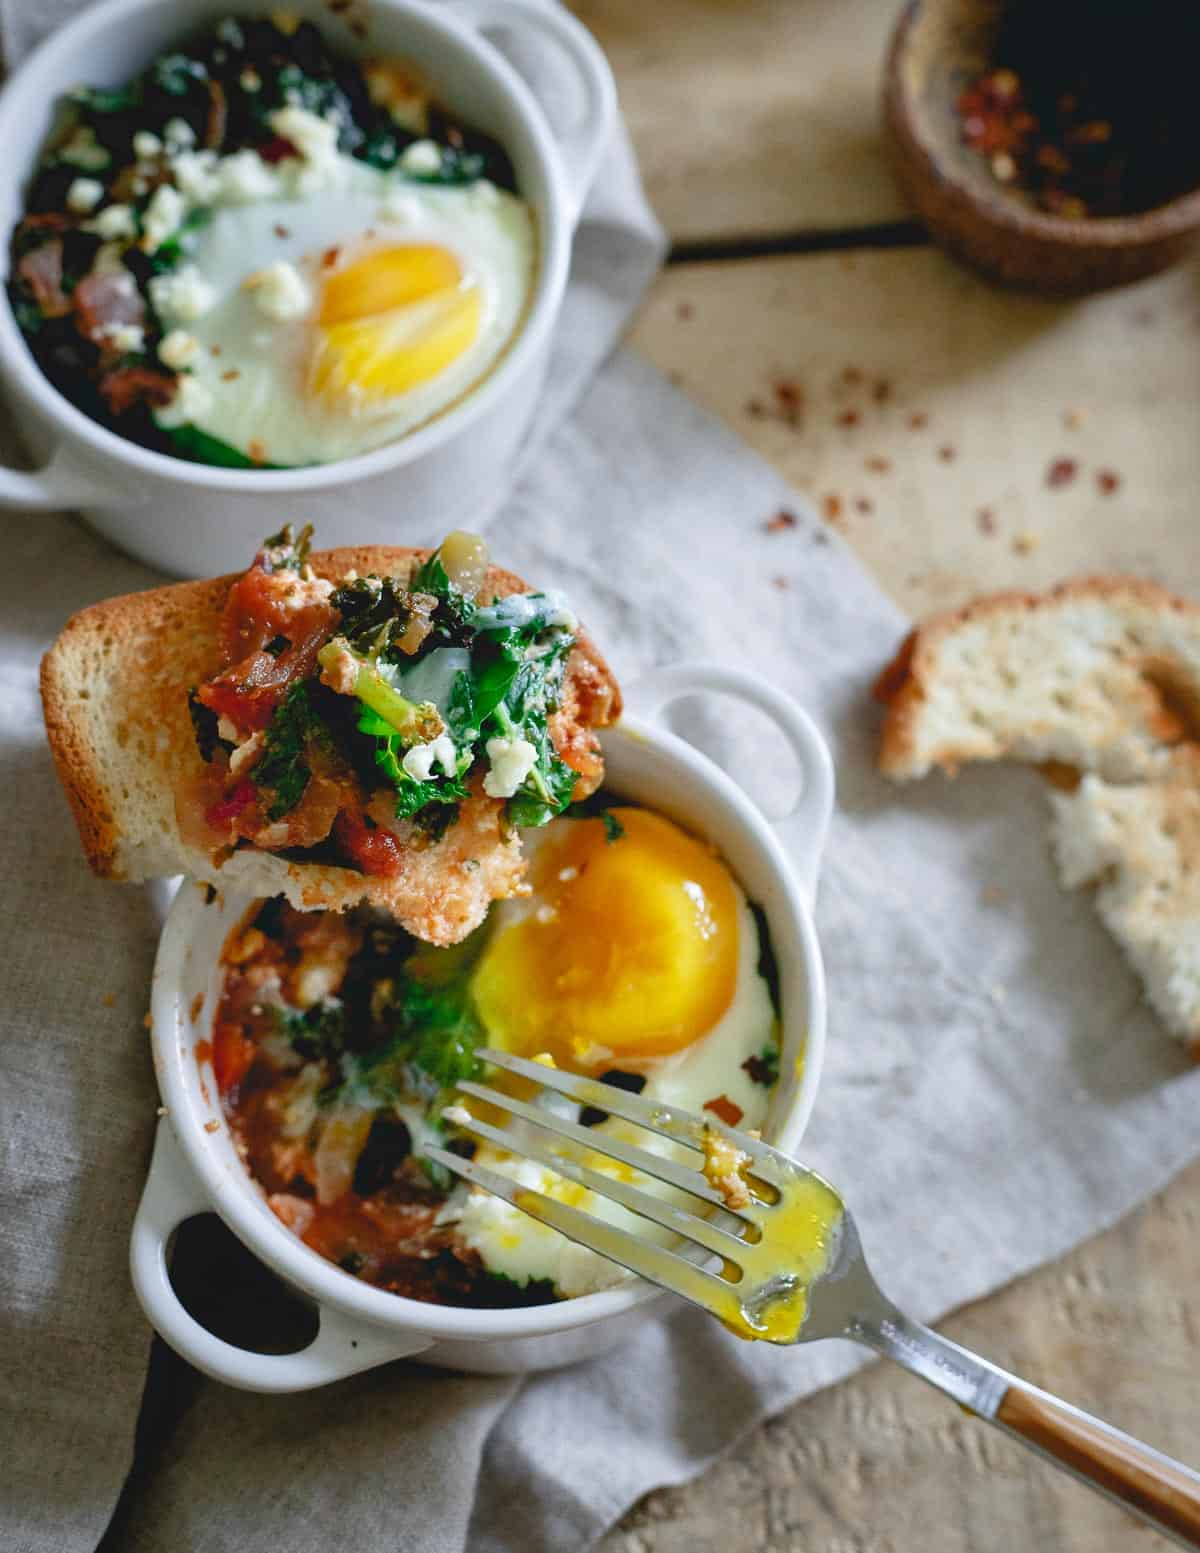 The possibilities are endless with this kale feta egg bake. It's an easy dinner or savory breakfast easily adapted to whatever you have on hand.